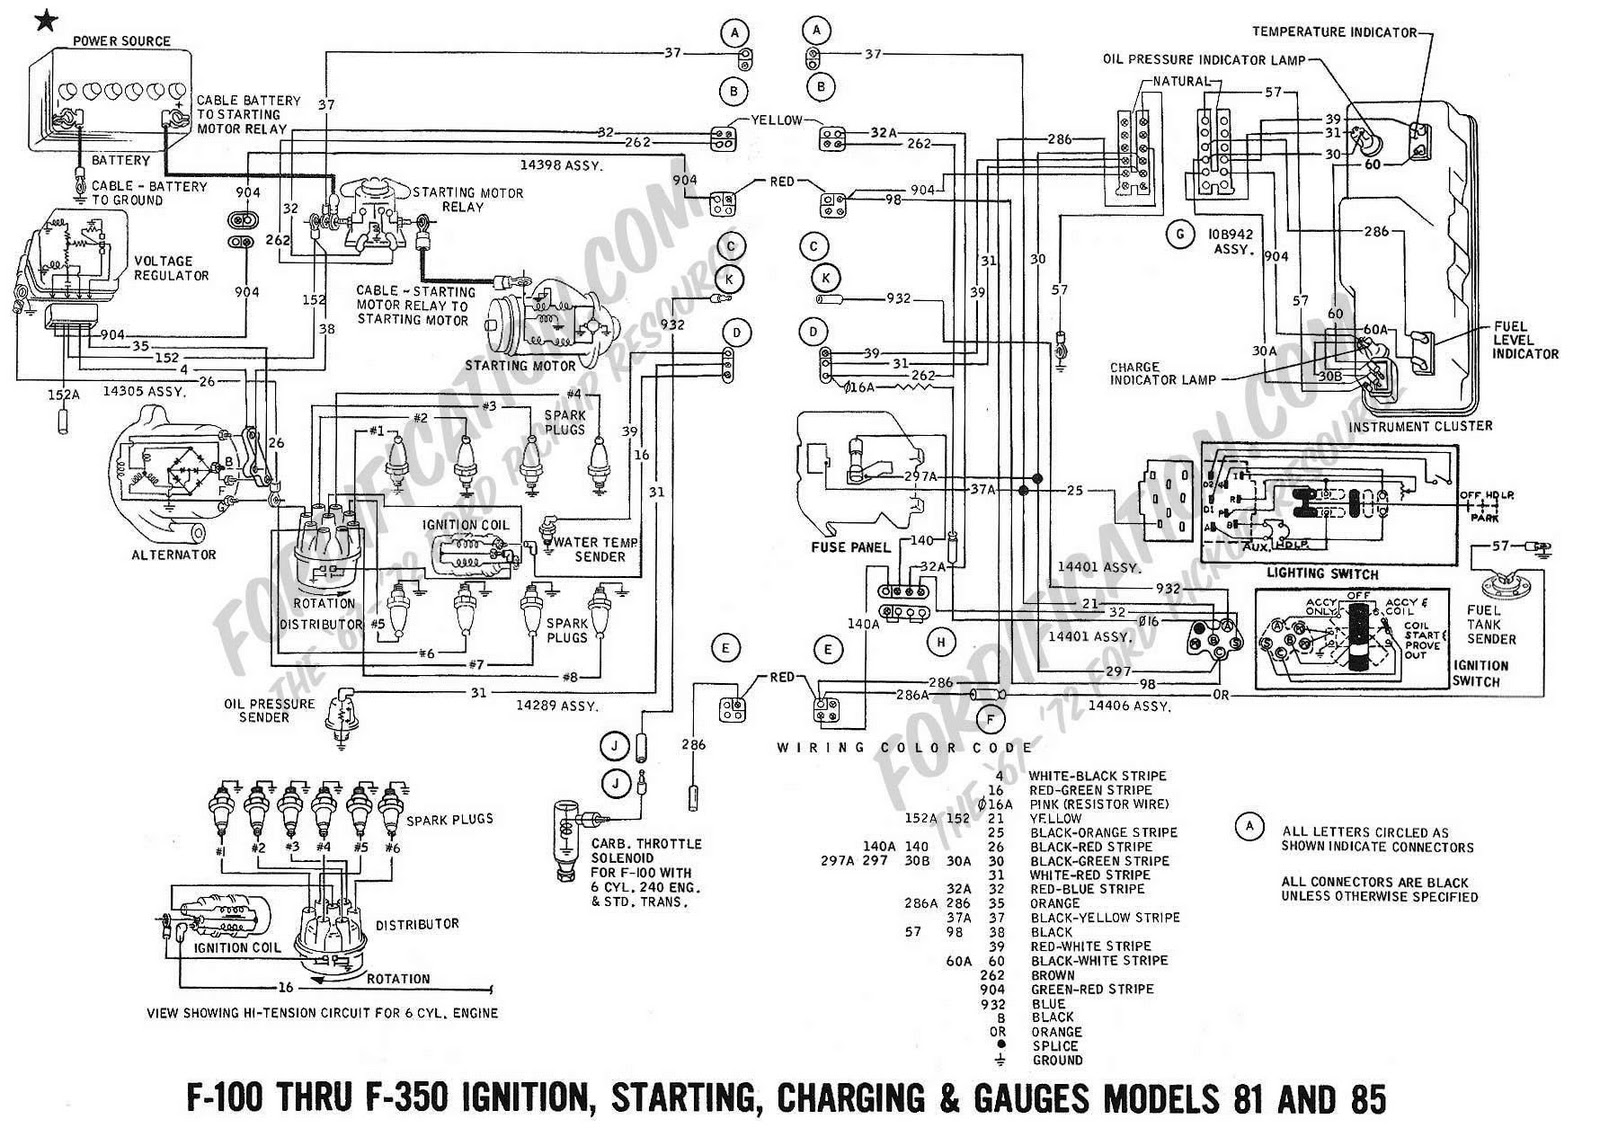 hight resolution of 1958 biscayne wiring diagram wiring diagram1958 corvette gauge wiring diagram wiring diagram g81958 corvette wiring diagram